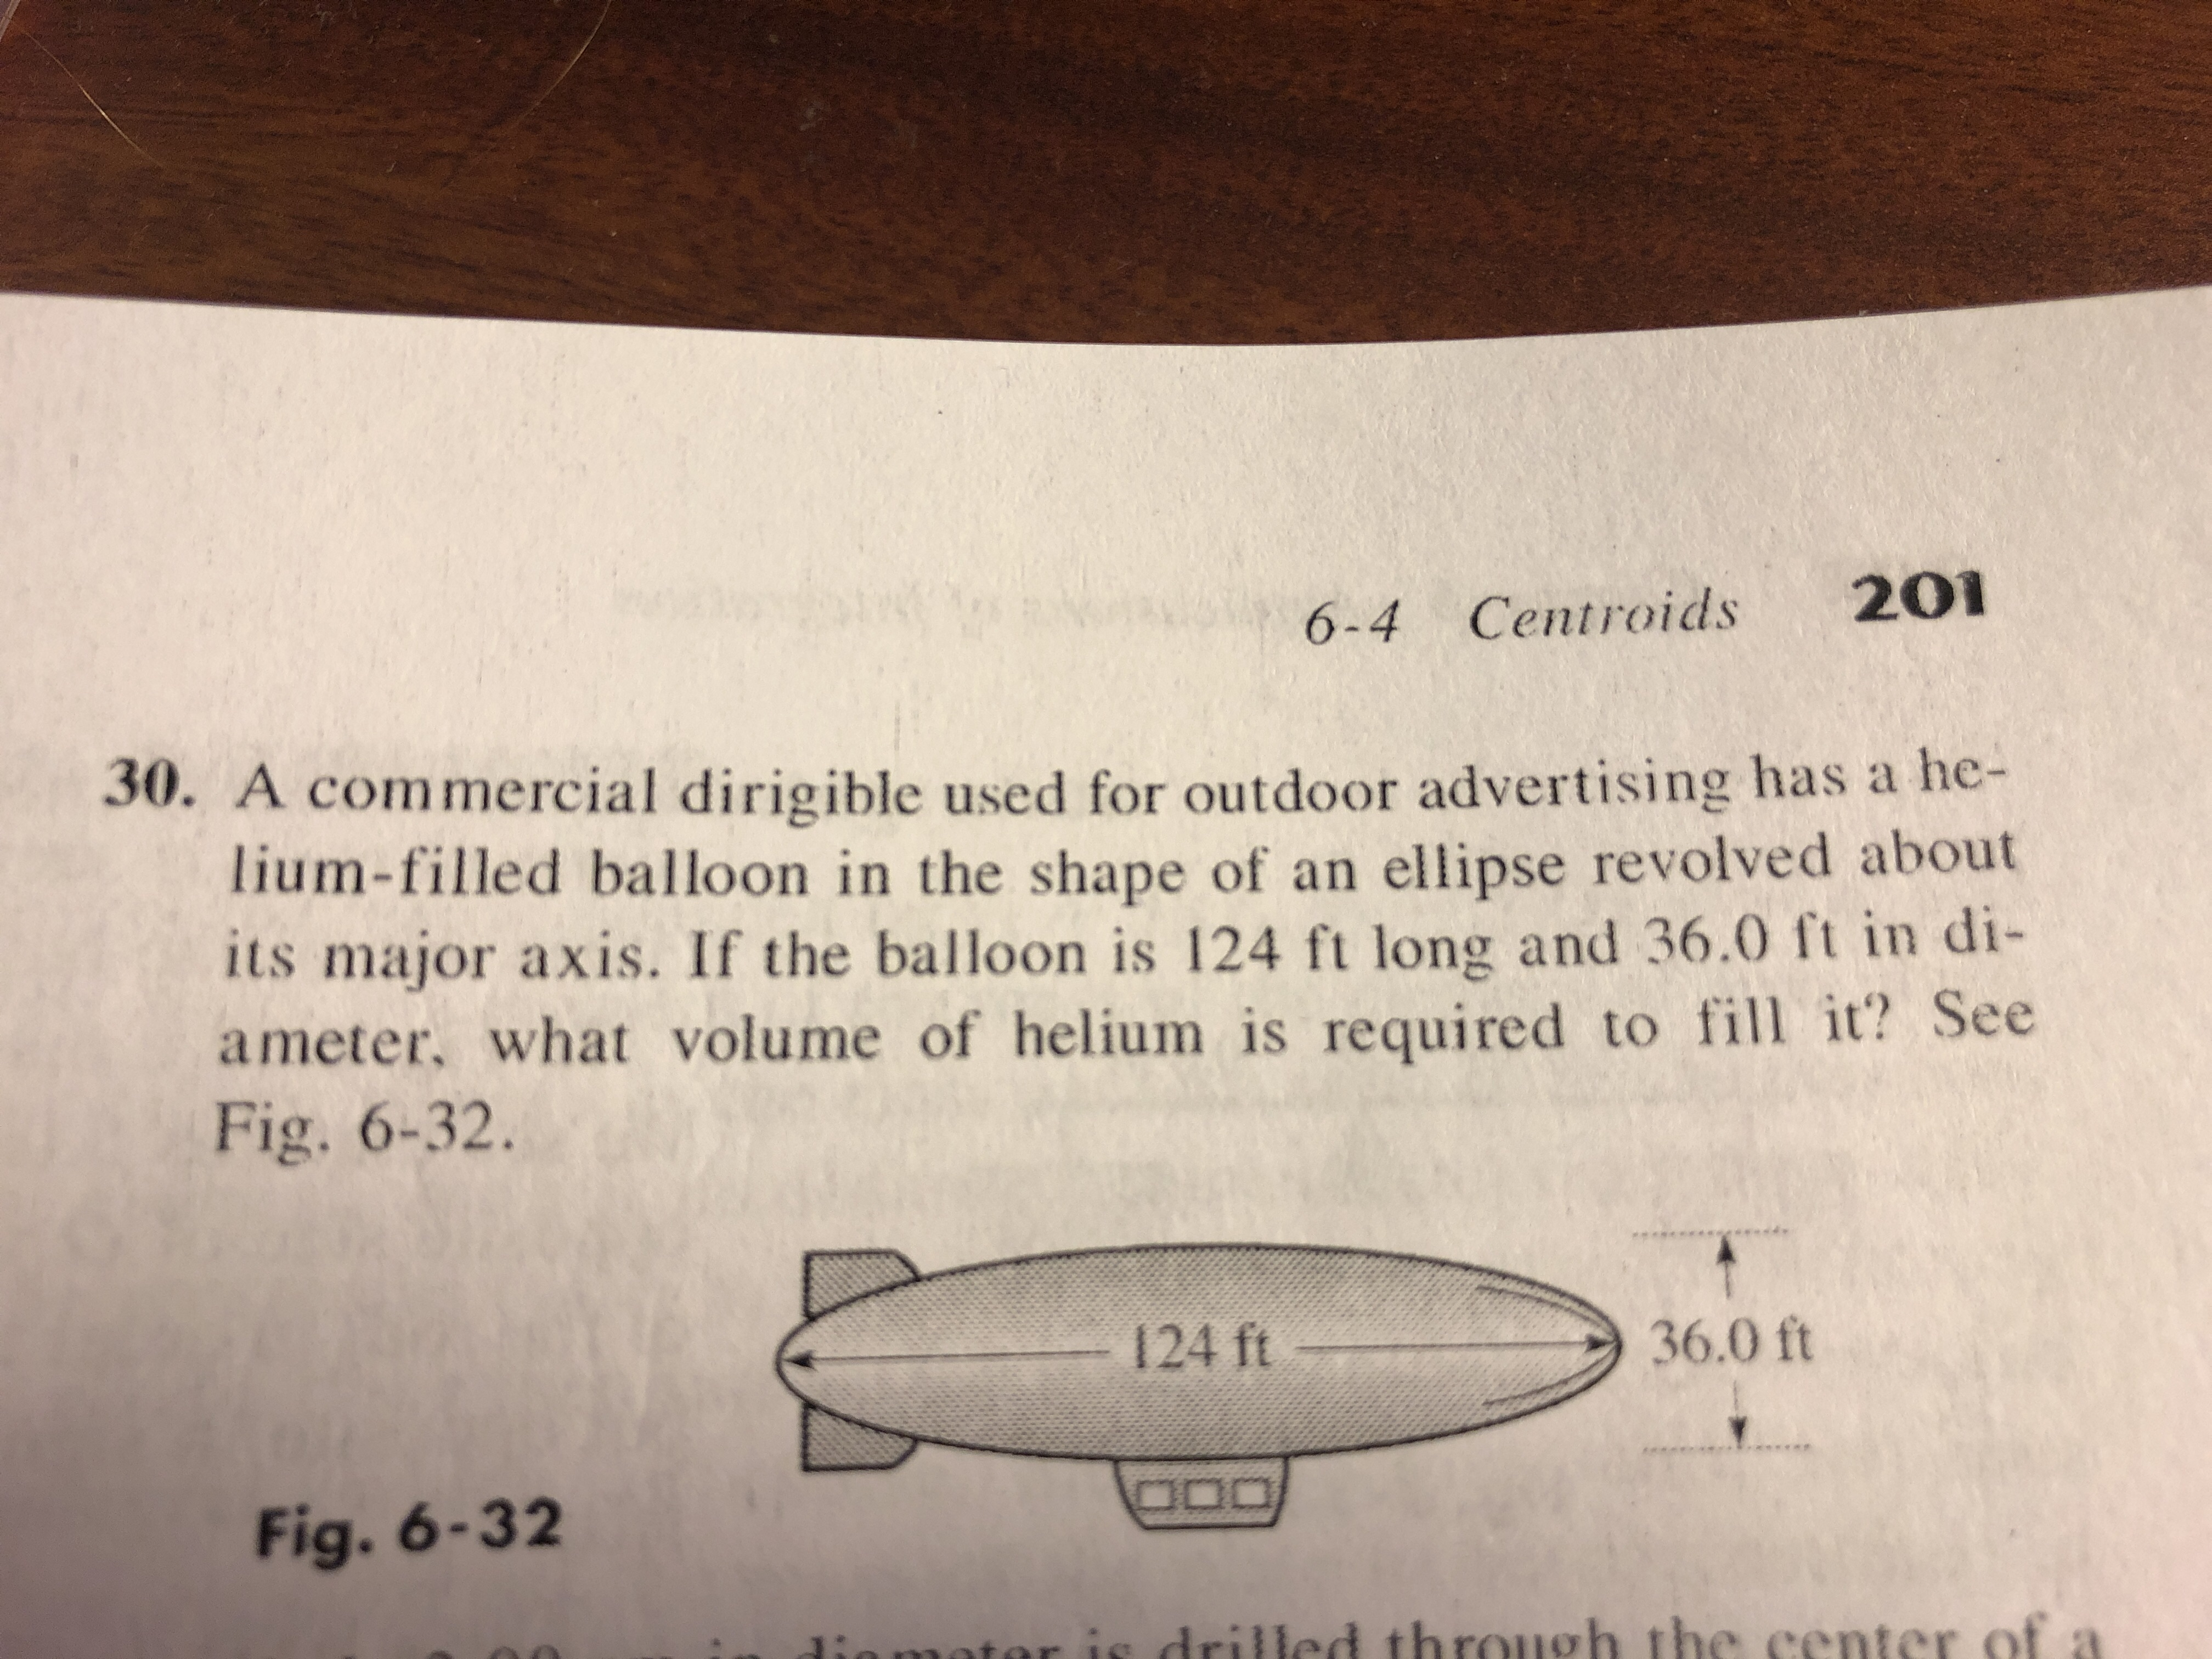 6-4 Centroids 201 30. A commercial dirigible used for outdoor advertising has a he- lium-filled balloon in the shape of an ellipse revolved about its major axis. If the balloon is 124 ft long and 36.0 ft in di- ameter, what volume of helium is required to t? See ее Fig. 6-32. 36.0 ft Fig. 6-3 2